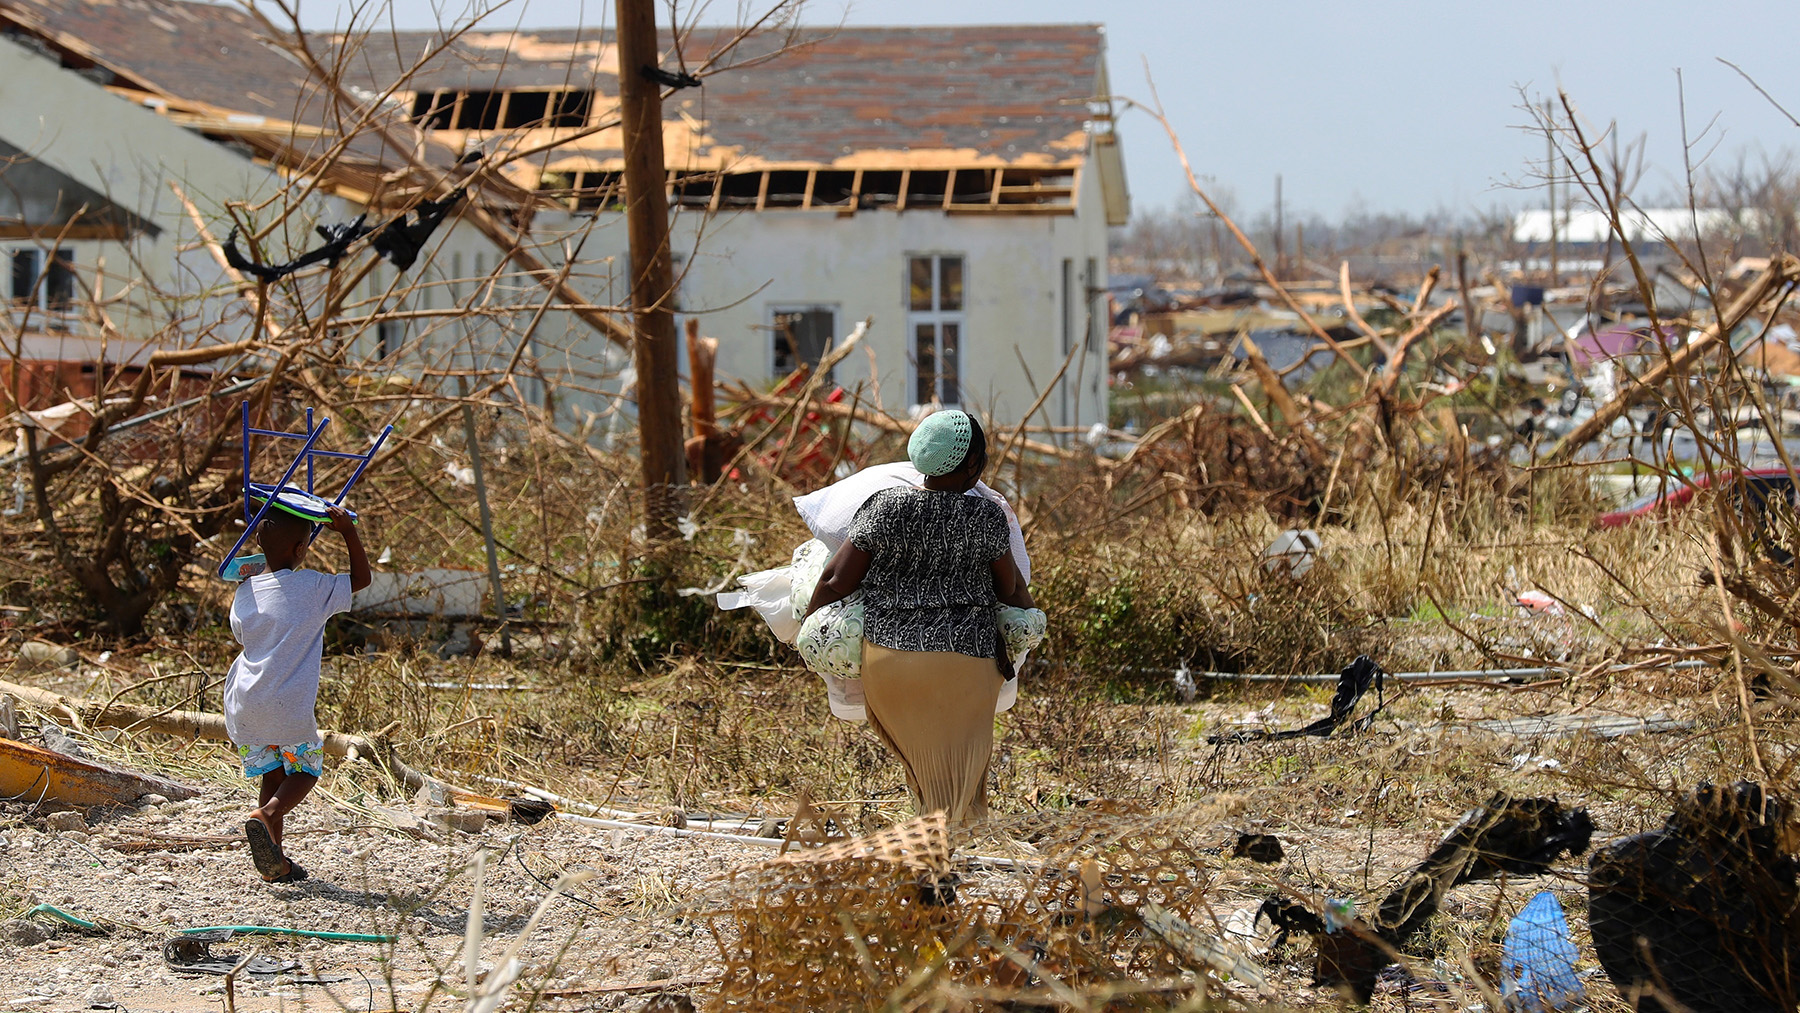 Residents of the island of Great Abaco, in the Bahamas, carry their possessions after Hurricane Dorian. (Photo courtesy of the UK Ministry of Defense)